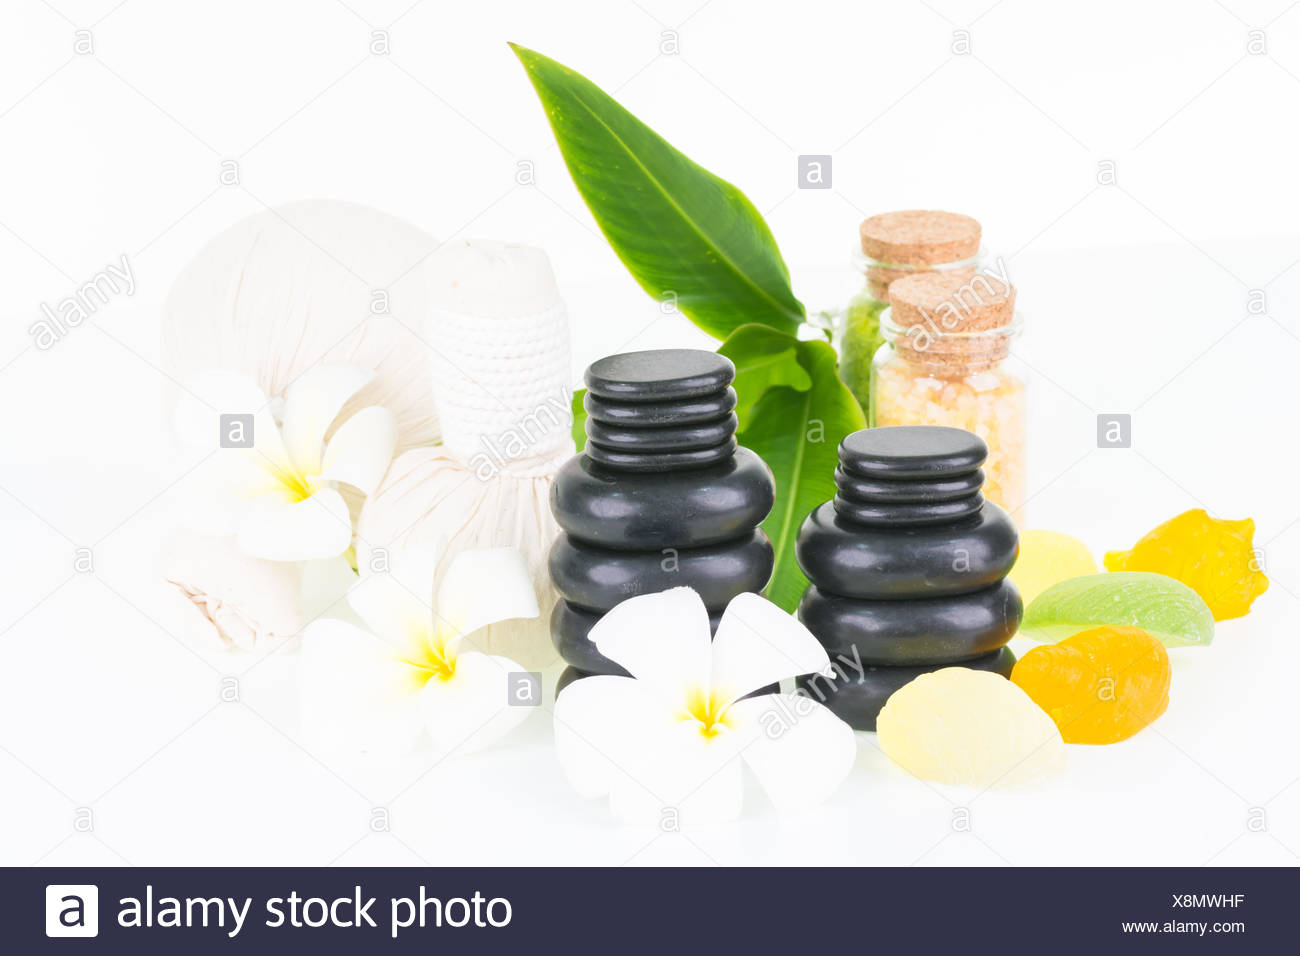 Tropical spa getaway with herbal compress balls, seashell shaped soaps, hot stones and bath salt - Stock Image